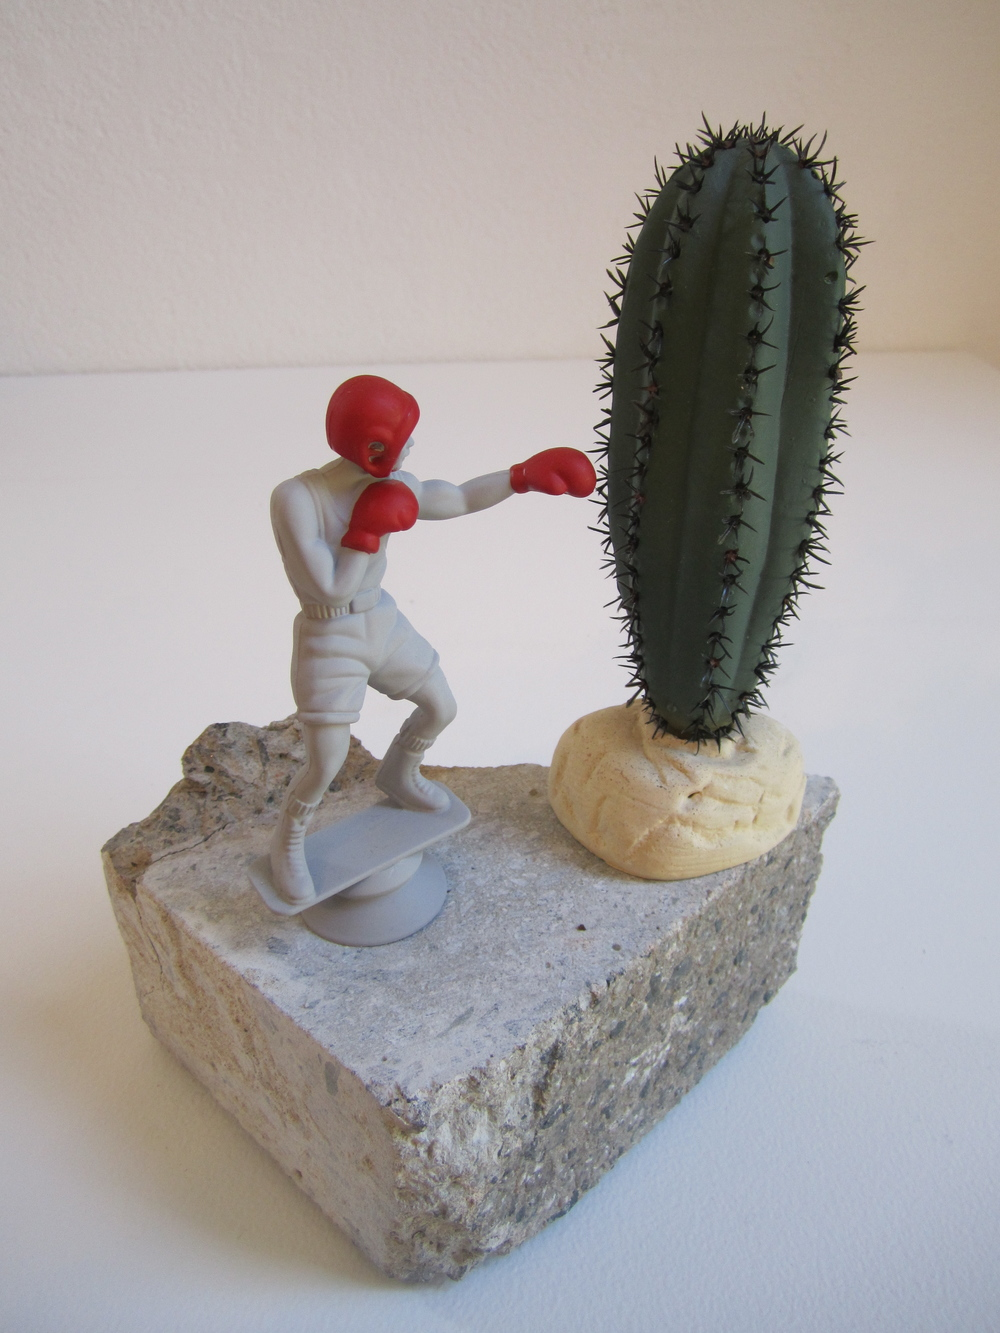 Sharp Jab, 2011    Enamel on acrylic, concrete, plastic 21 x 24 x 14 cm